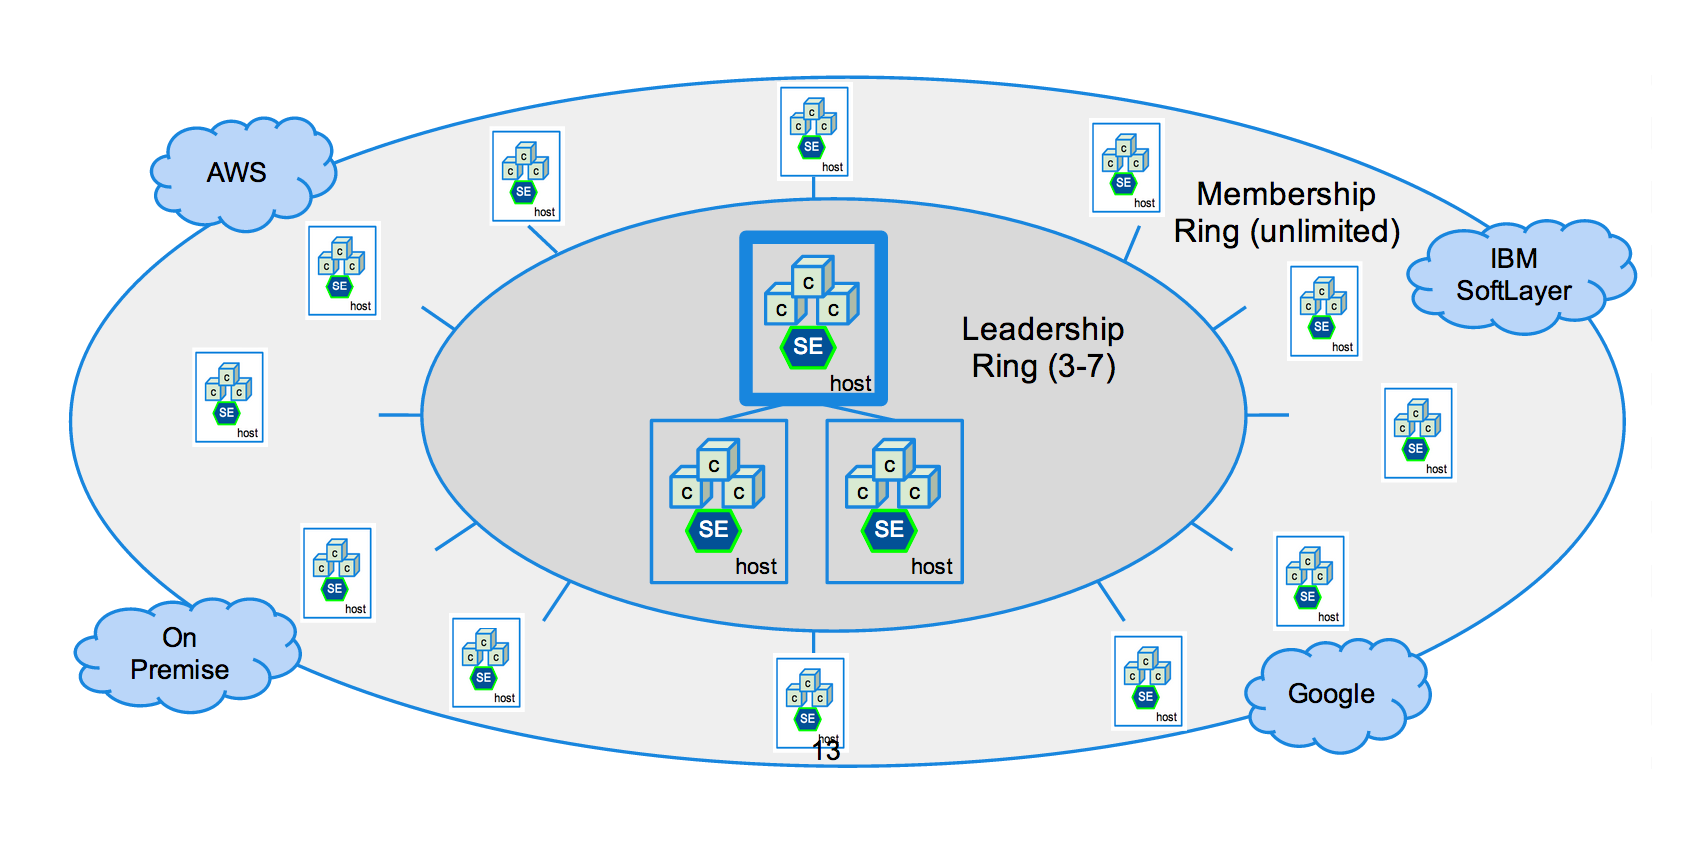 Diagram of StackEngine architecture. Has containers in center layer surrounded by layer of Docker containers and different cloud vendors dispersed along the most outside layer